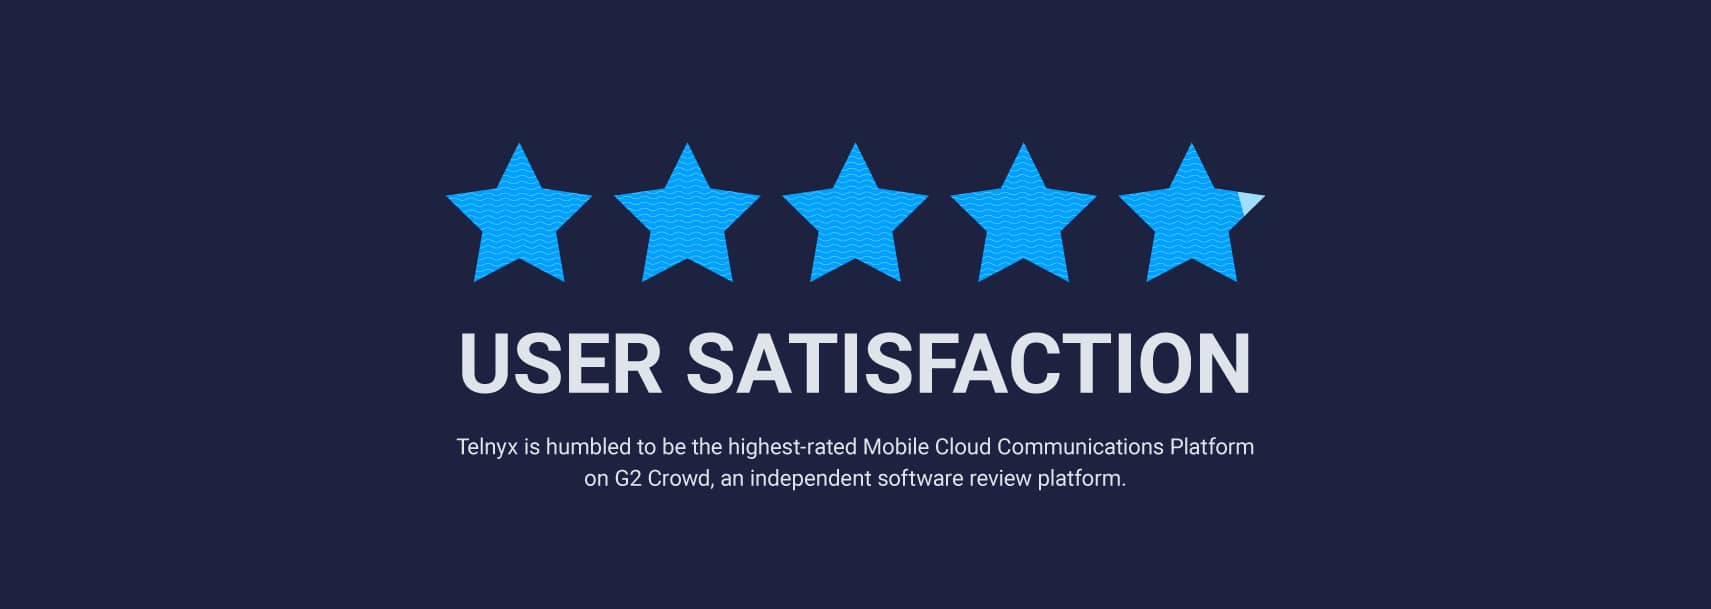 User satisfaction rating at G2